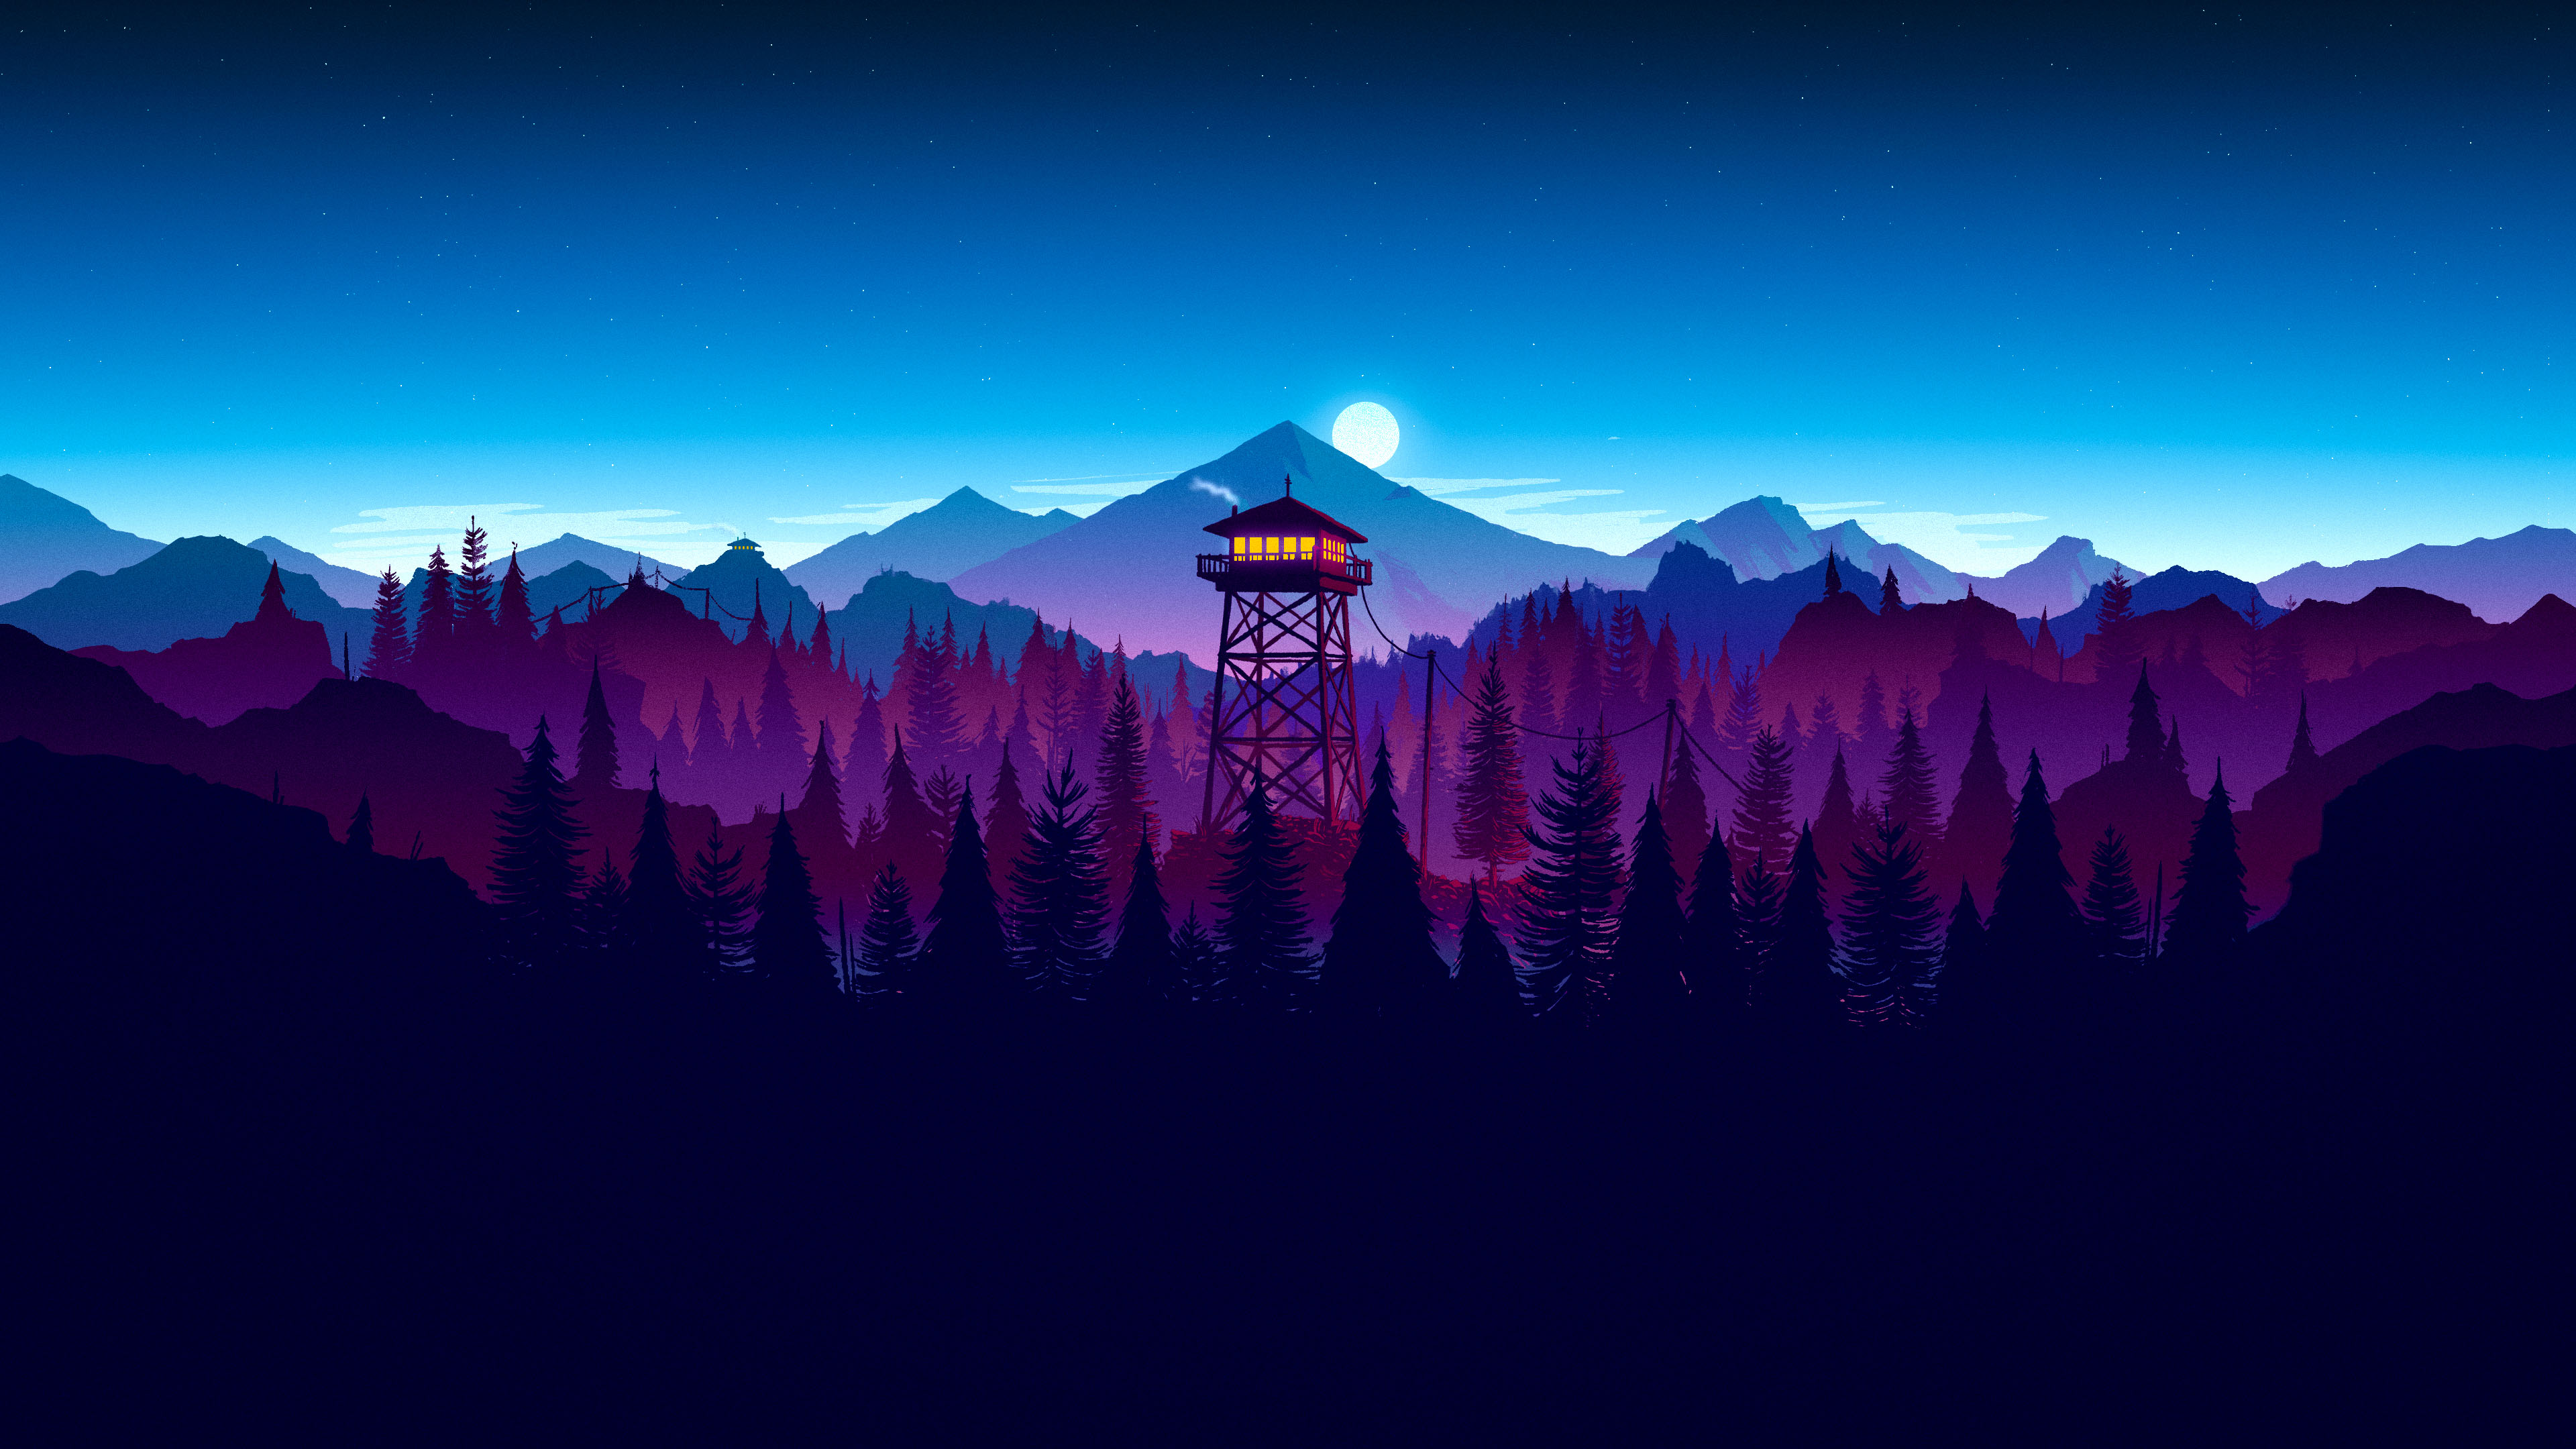 23 hd firewatch game wallpapers - Love wallpaper 2048x1152 ...